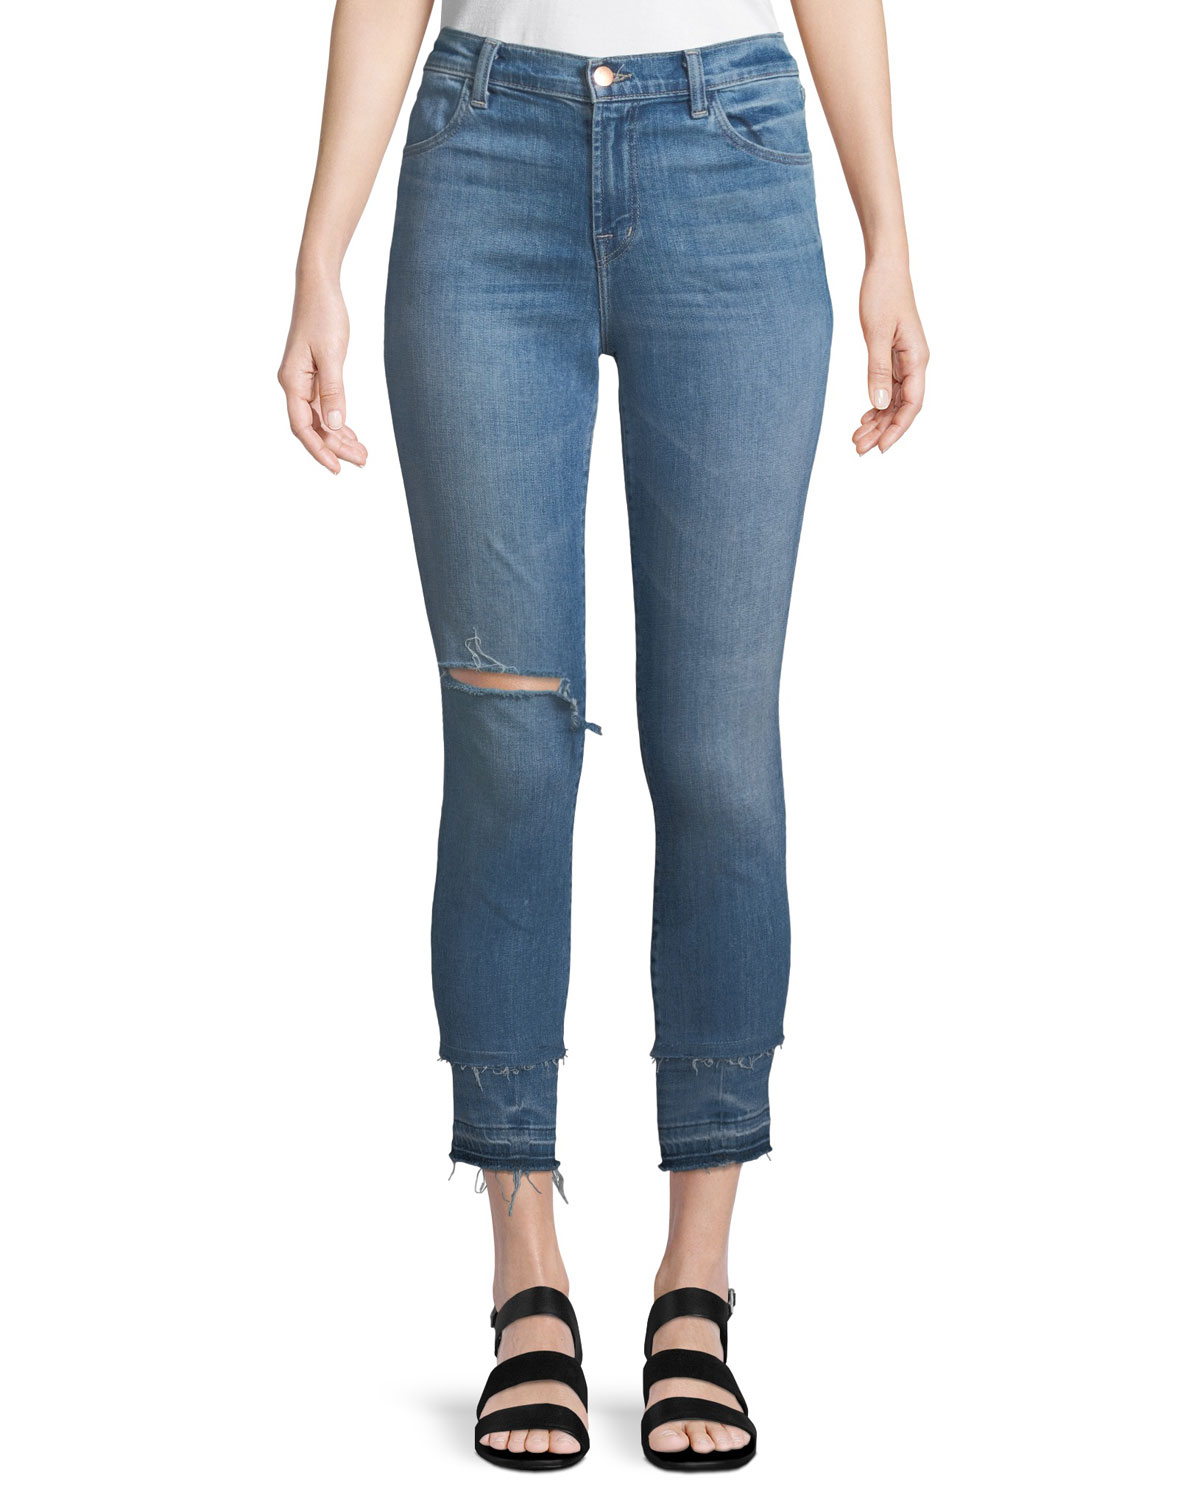 Alana High-Rise Cropped Skinny Jeans with Ripped Knee